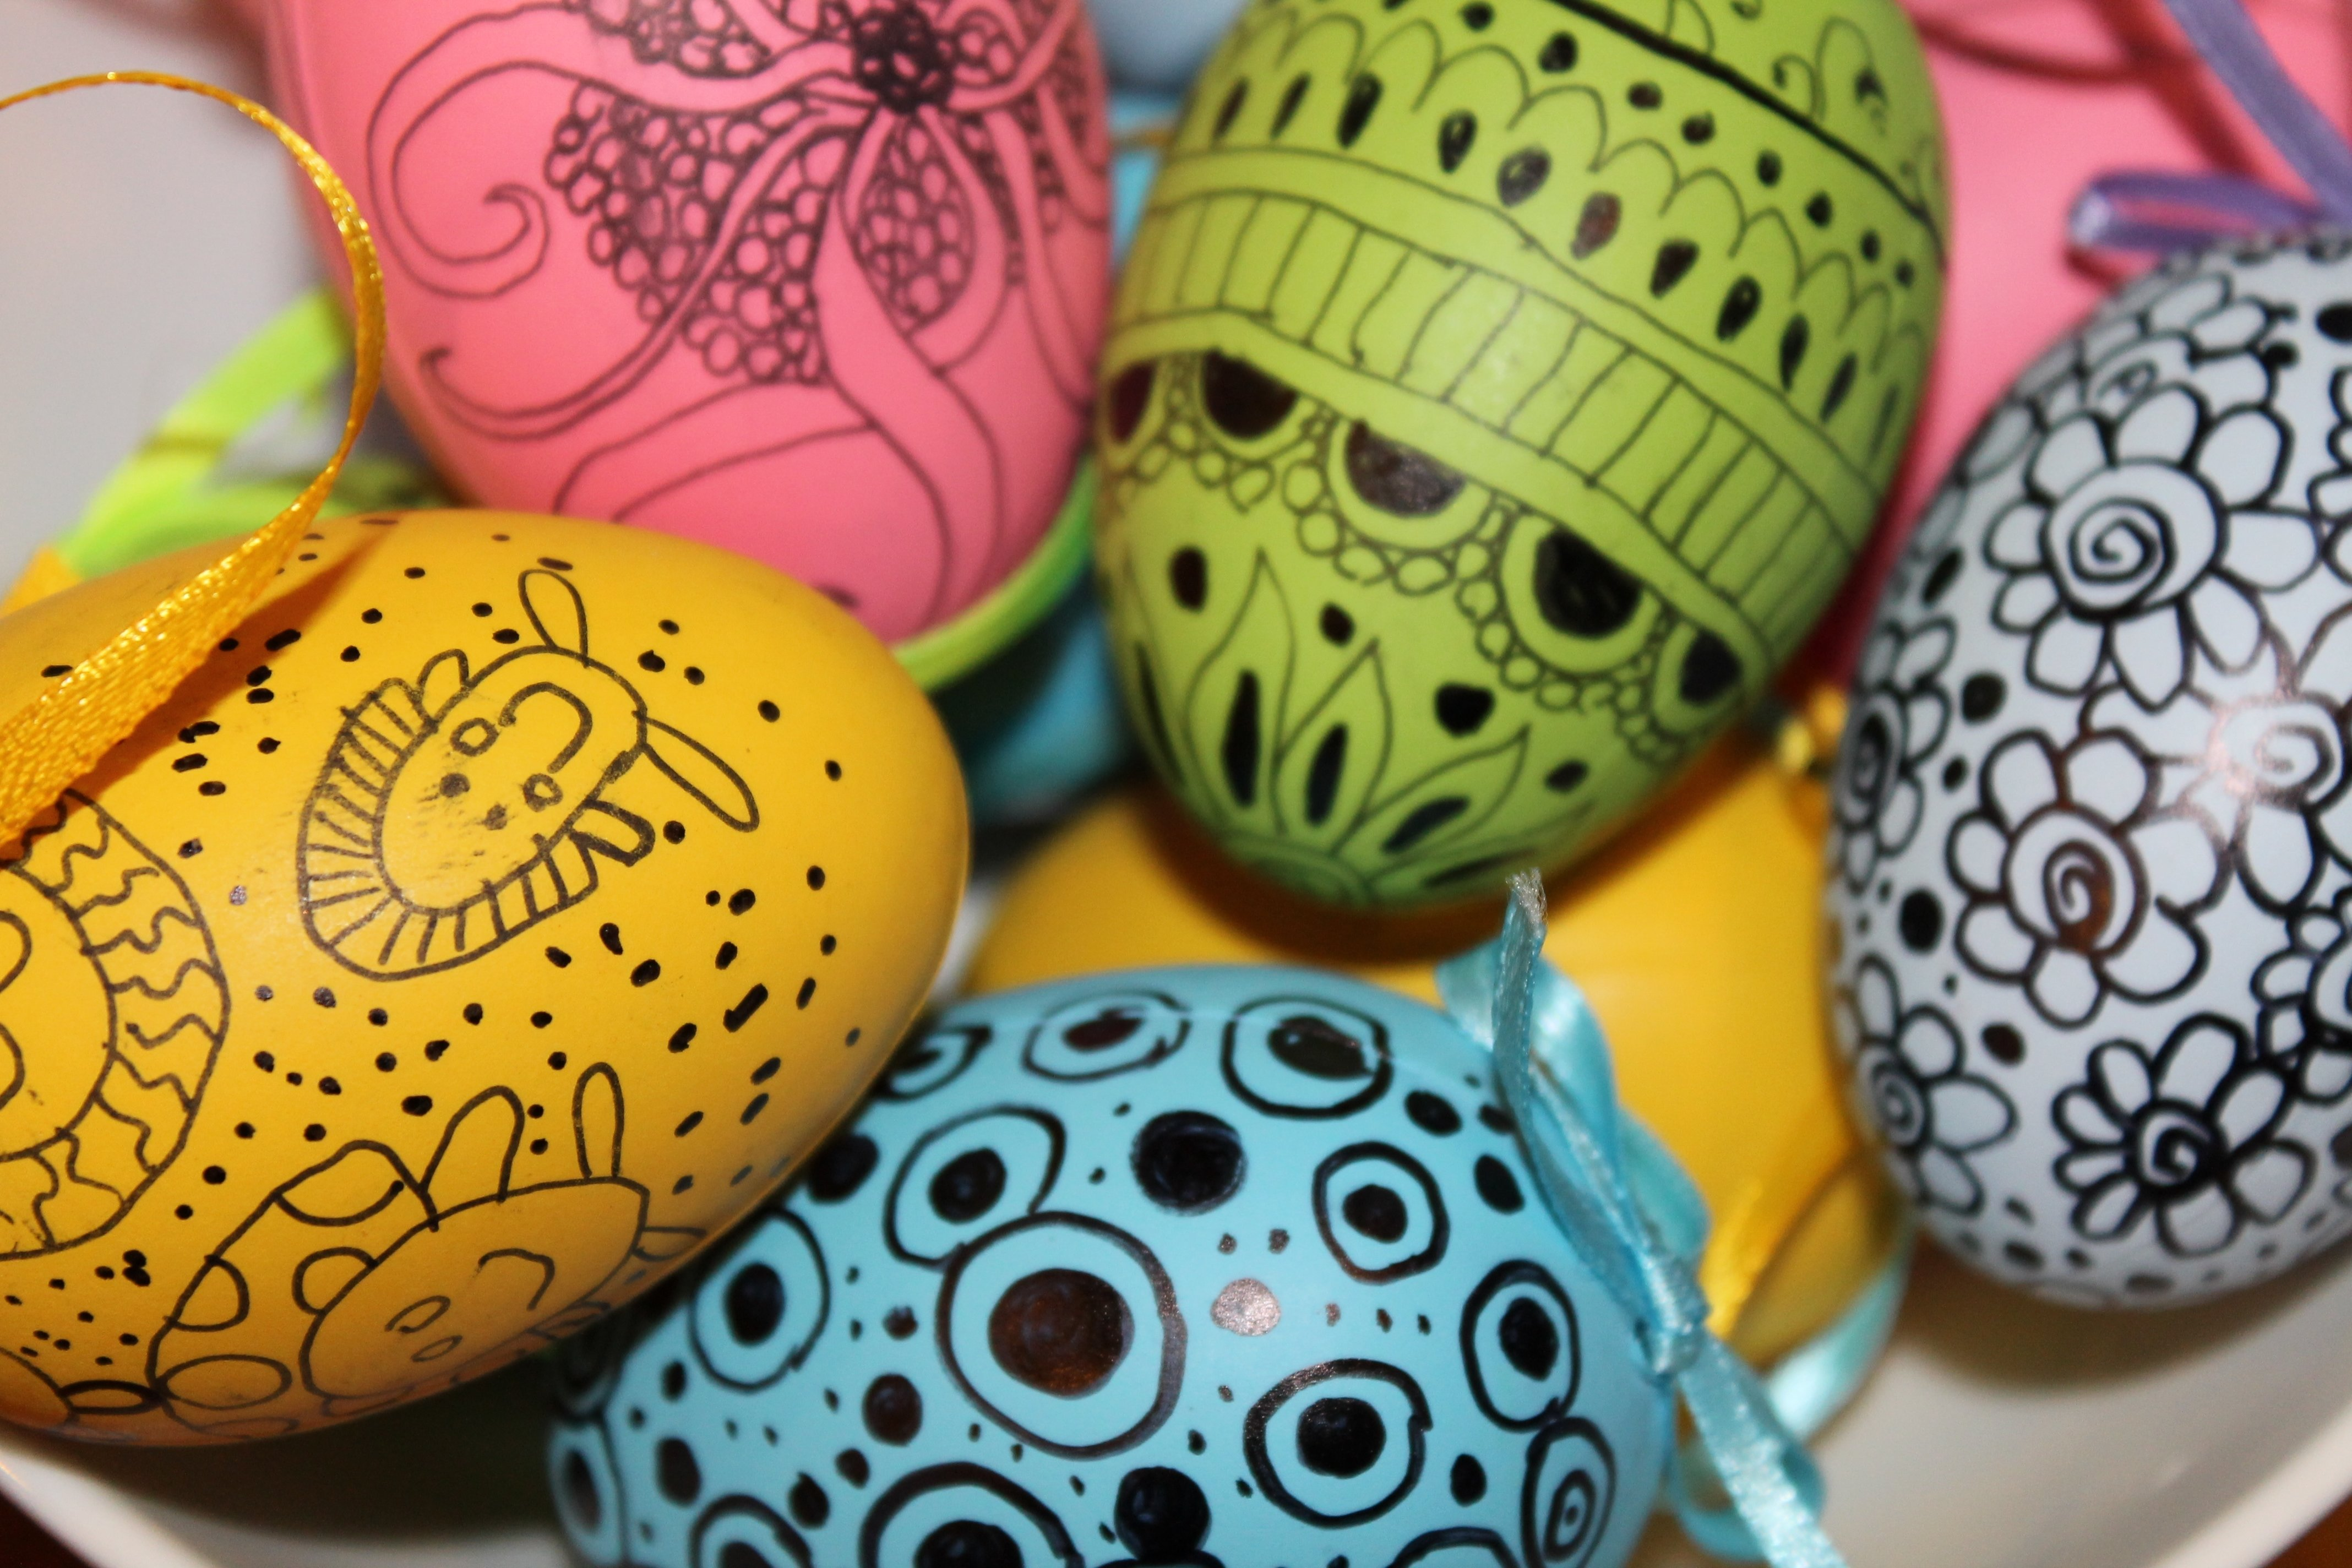 10 Cute Cool Easter Egg Decorating Ideas easter egg decorating idea 2 doodled eggs 2020